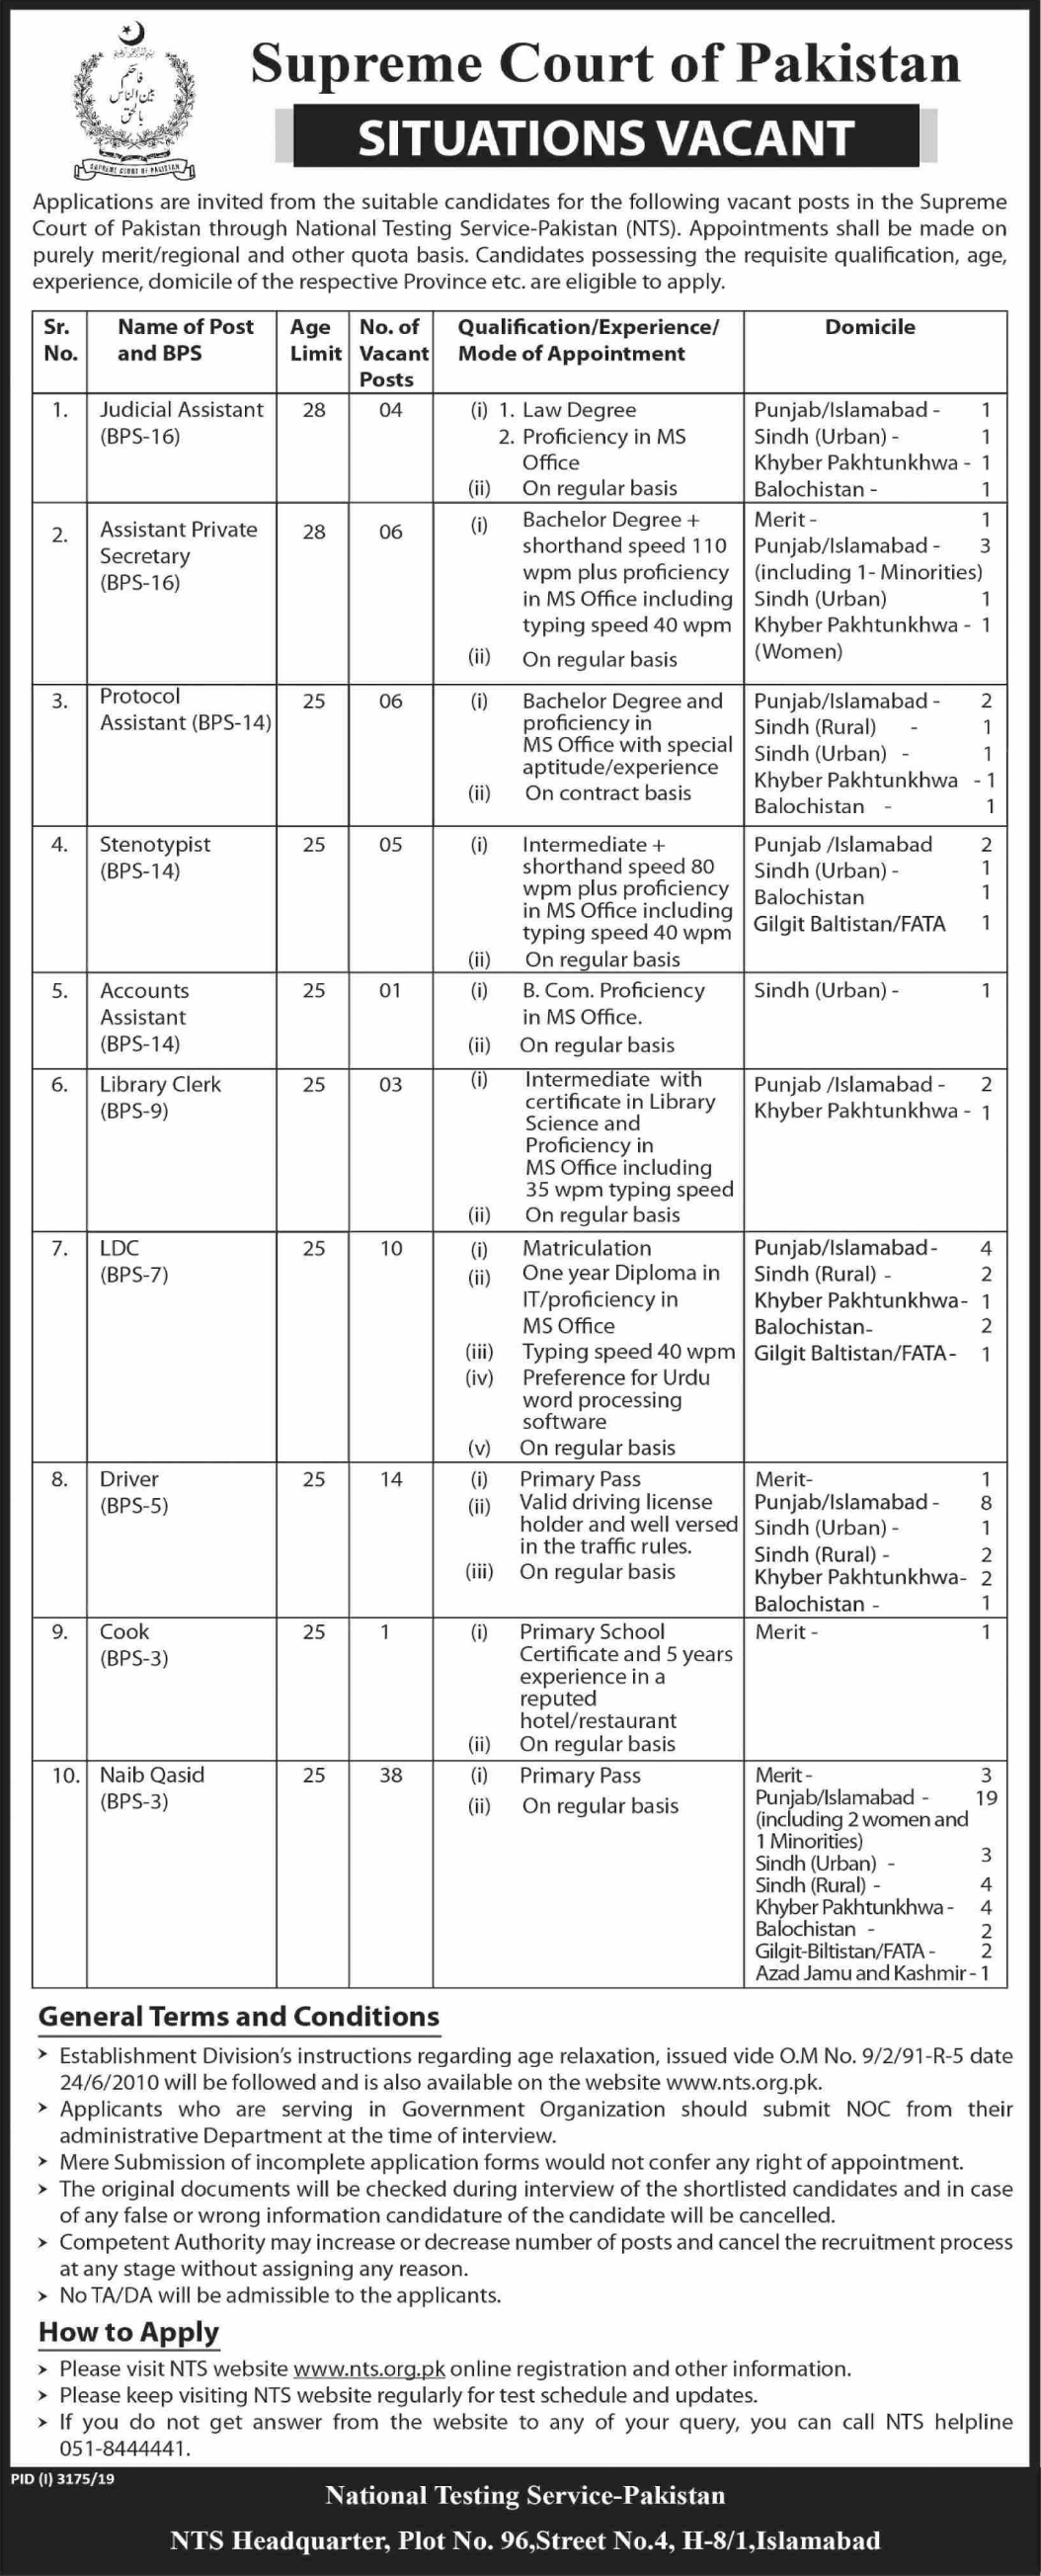 Supreme Court of Pakistan Jobs Via NTS 2019